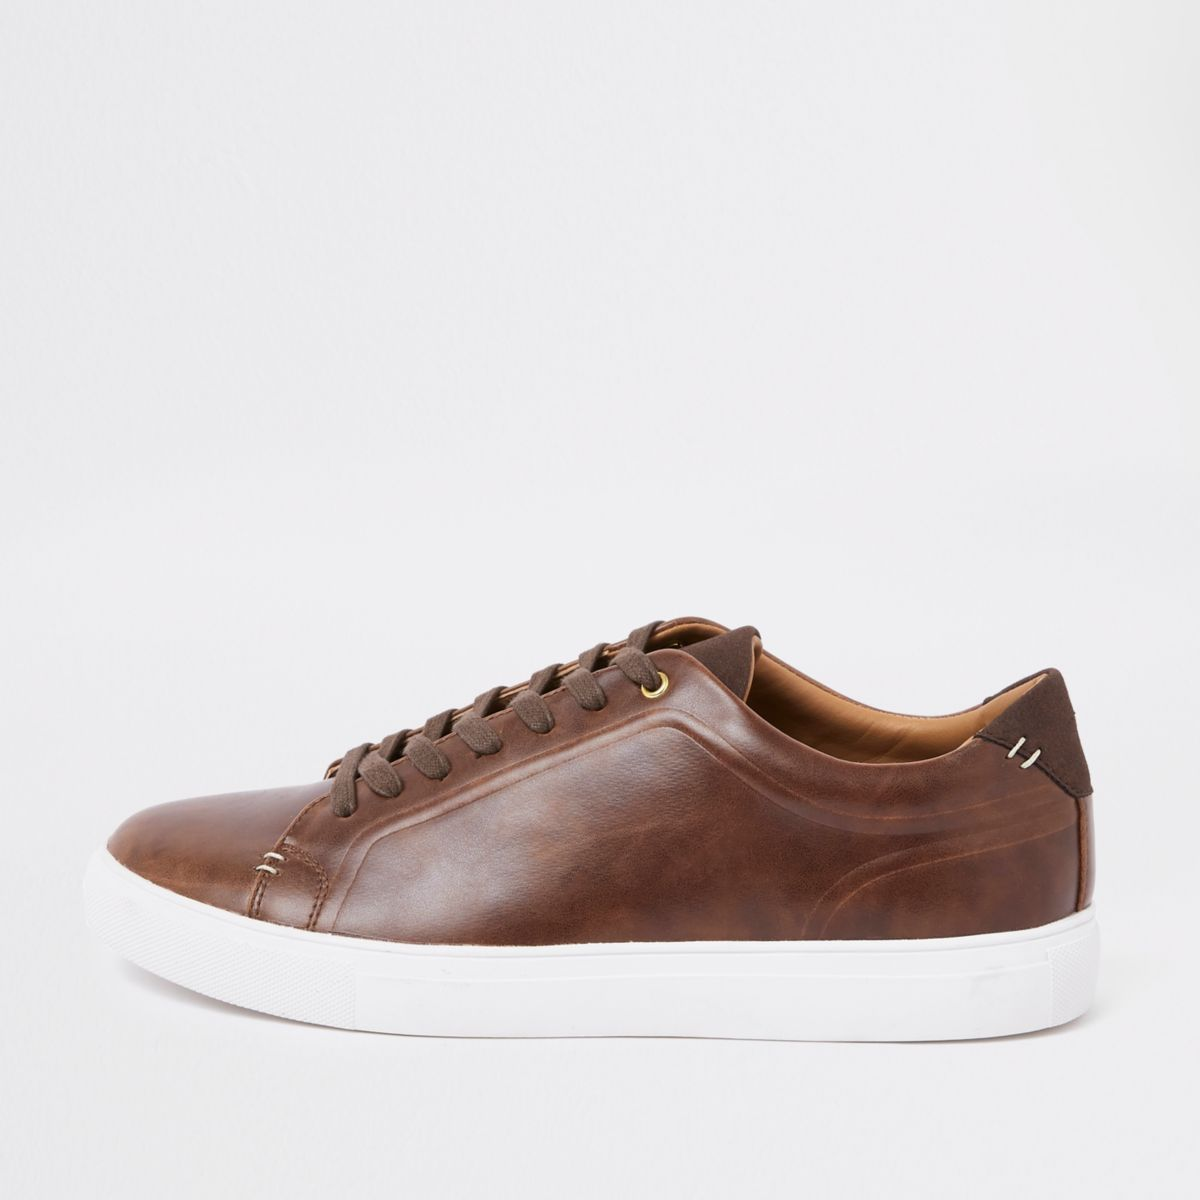 Brown faux leather lace-up sneakers